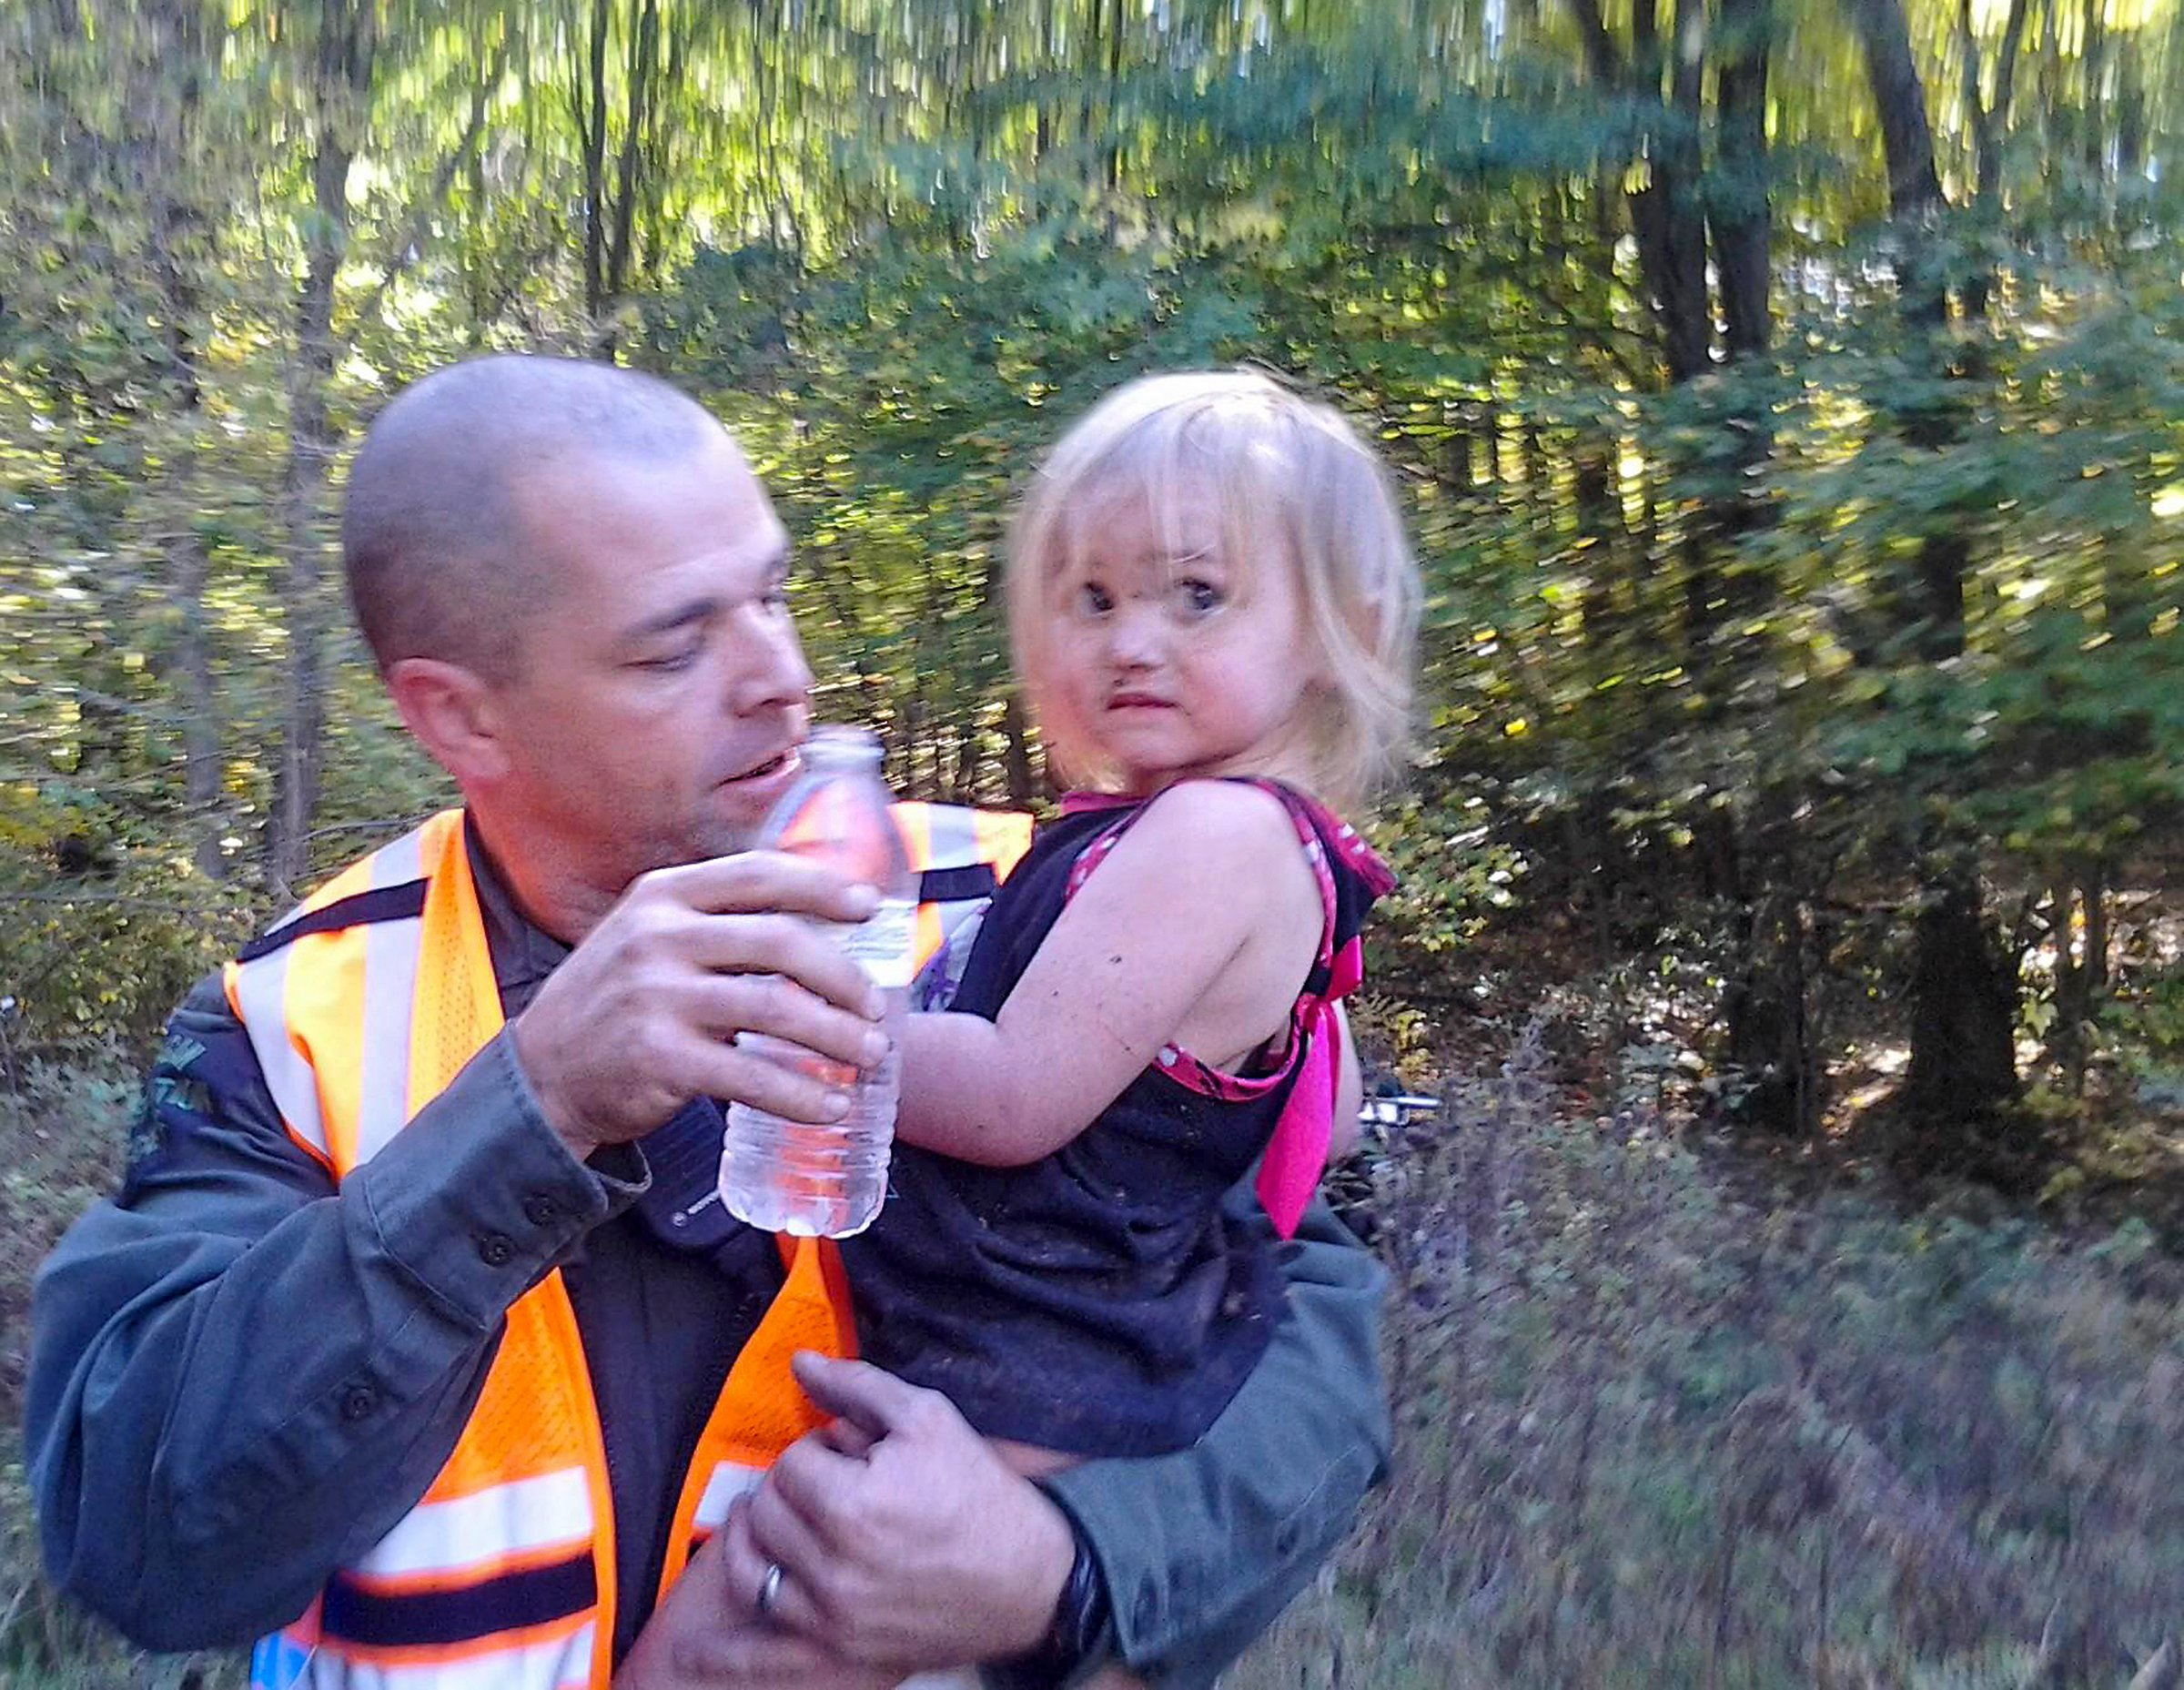 This officer has saved five lives, including a missing toddler, in rural Michigan